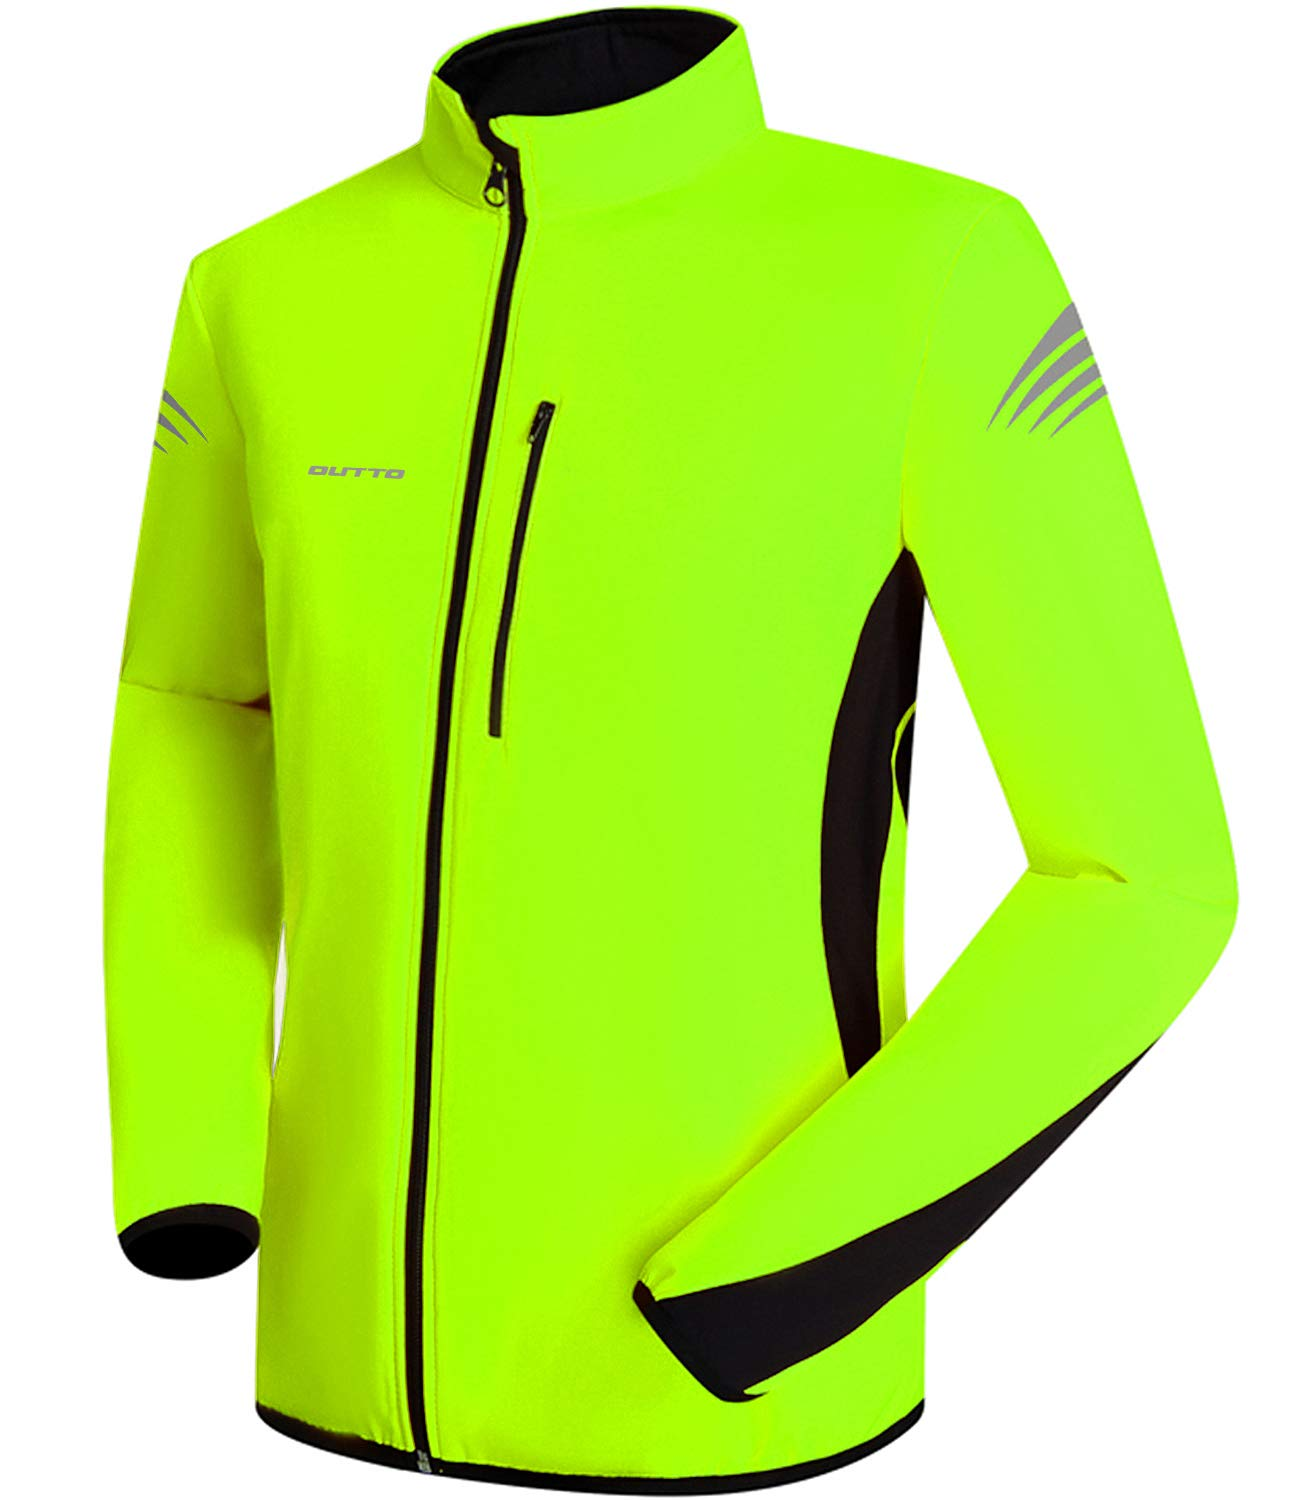 OUTTO Men's Winter Thermal Cycling Jacket Reflective Water Resistant Windbreaker(Large, 16001 Fluorescent Green) by OUTTO